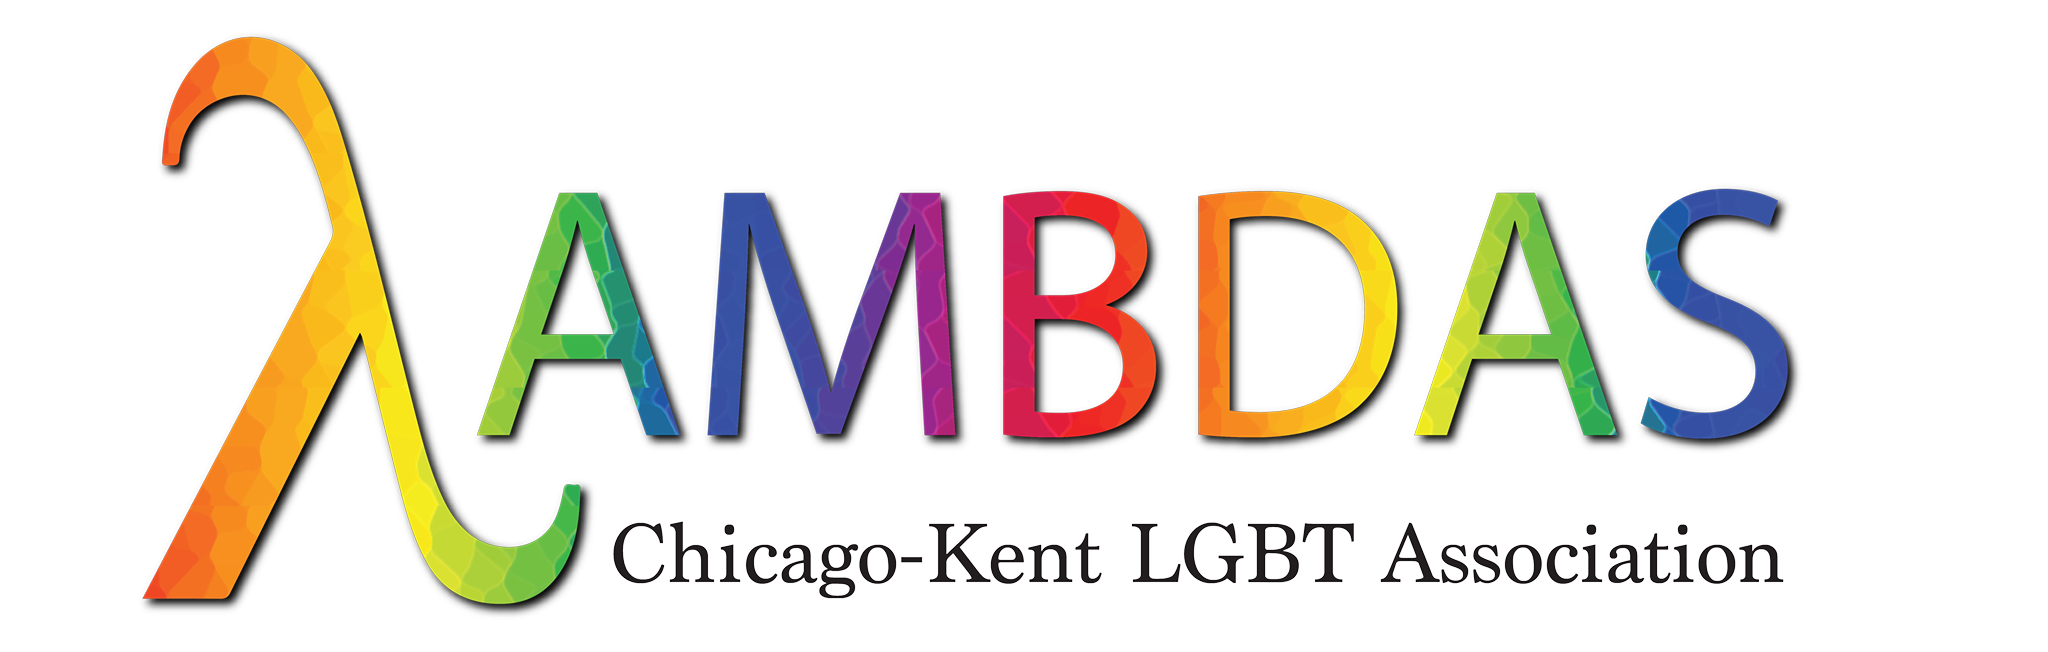 Lambdas: Chicago-Kent LGBT Association log